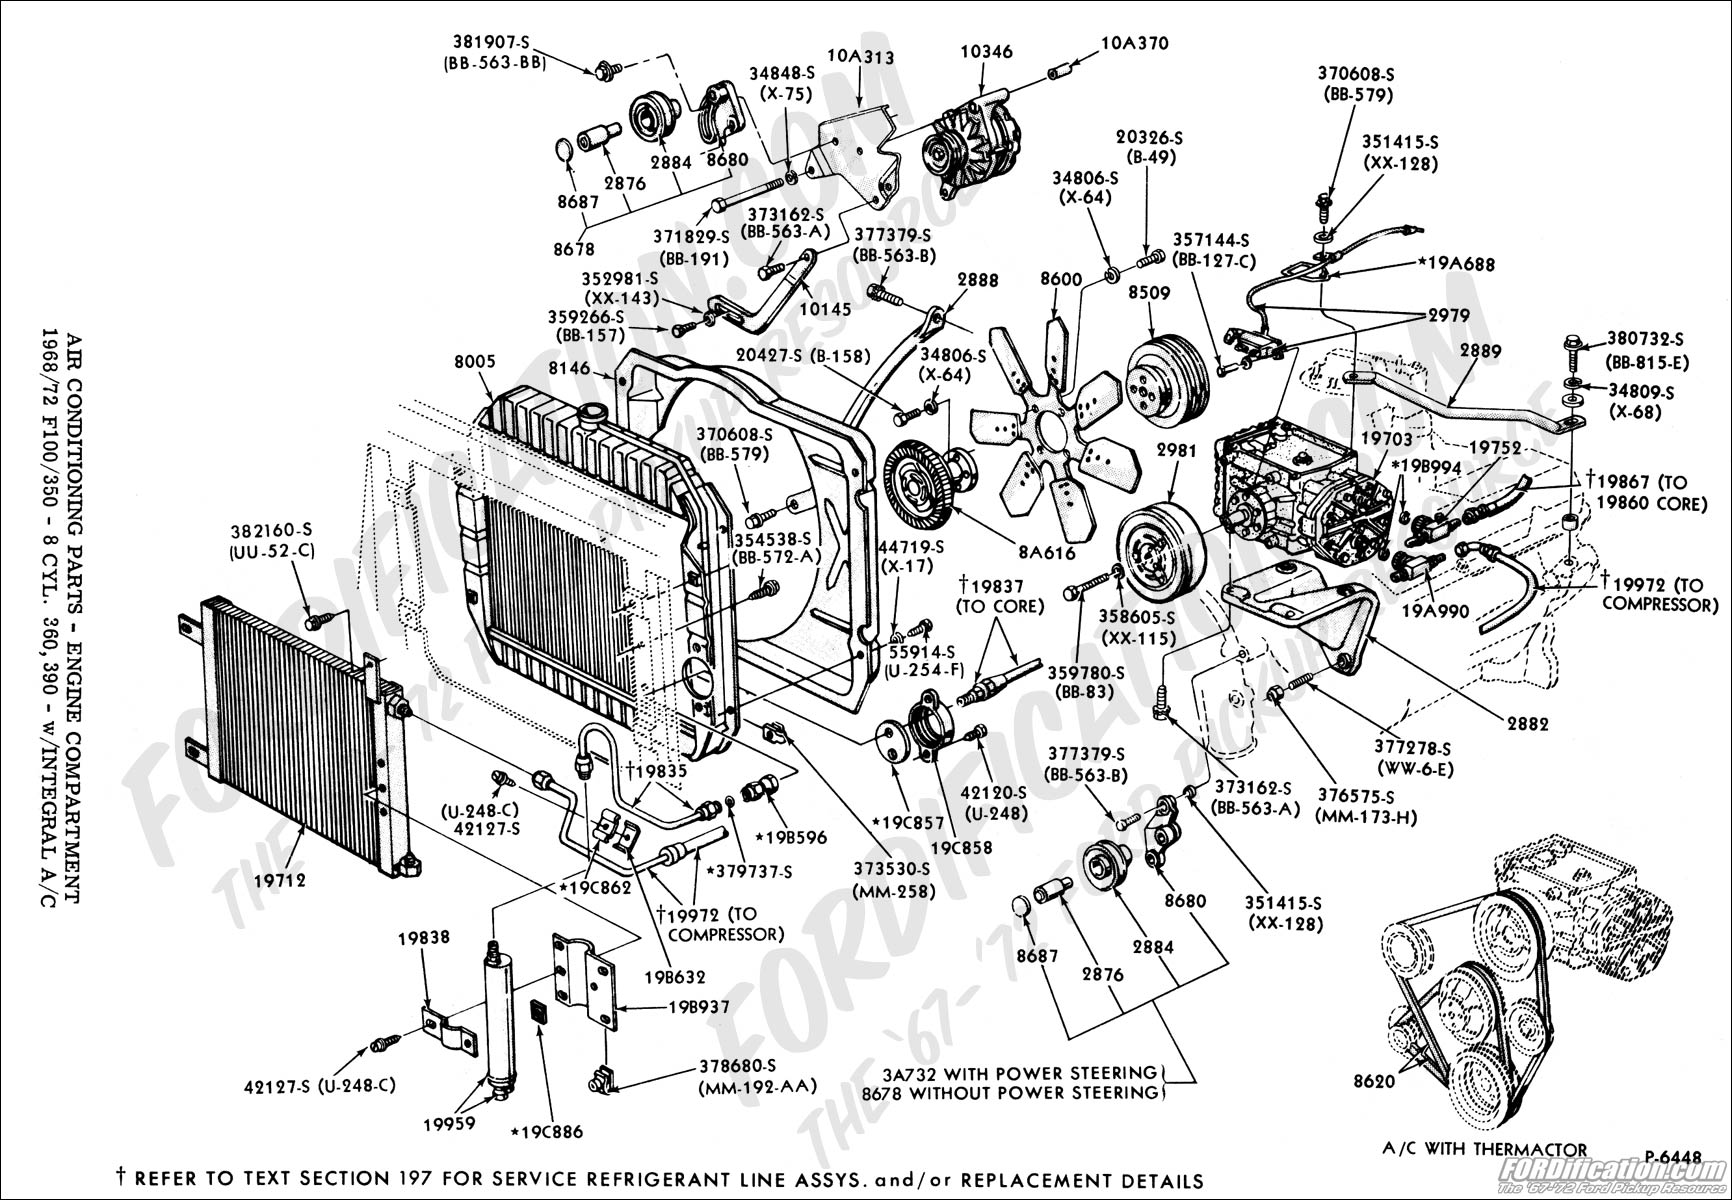 heat engine diagram air conditioner 2005 international wiring diagram air conditioner ford truck technical drawings and schematics - section f ...